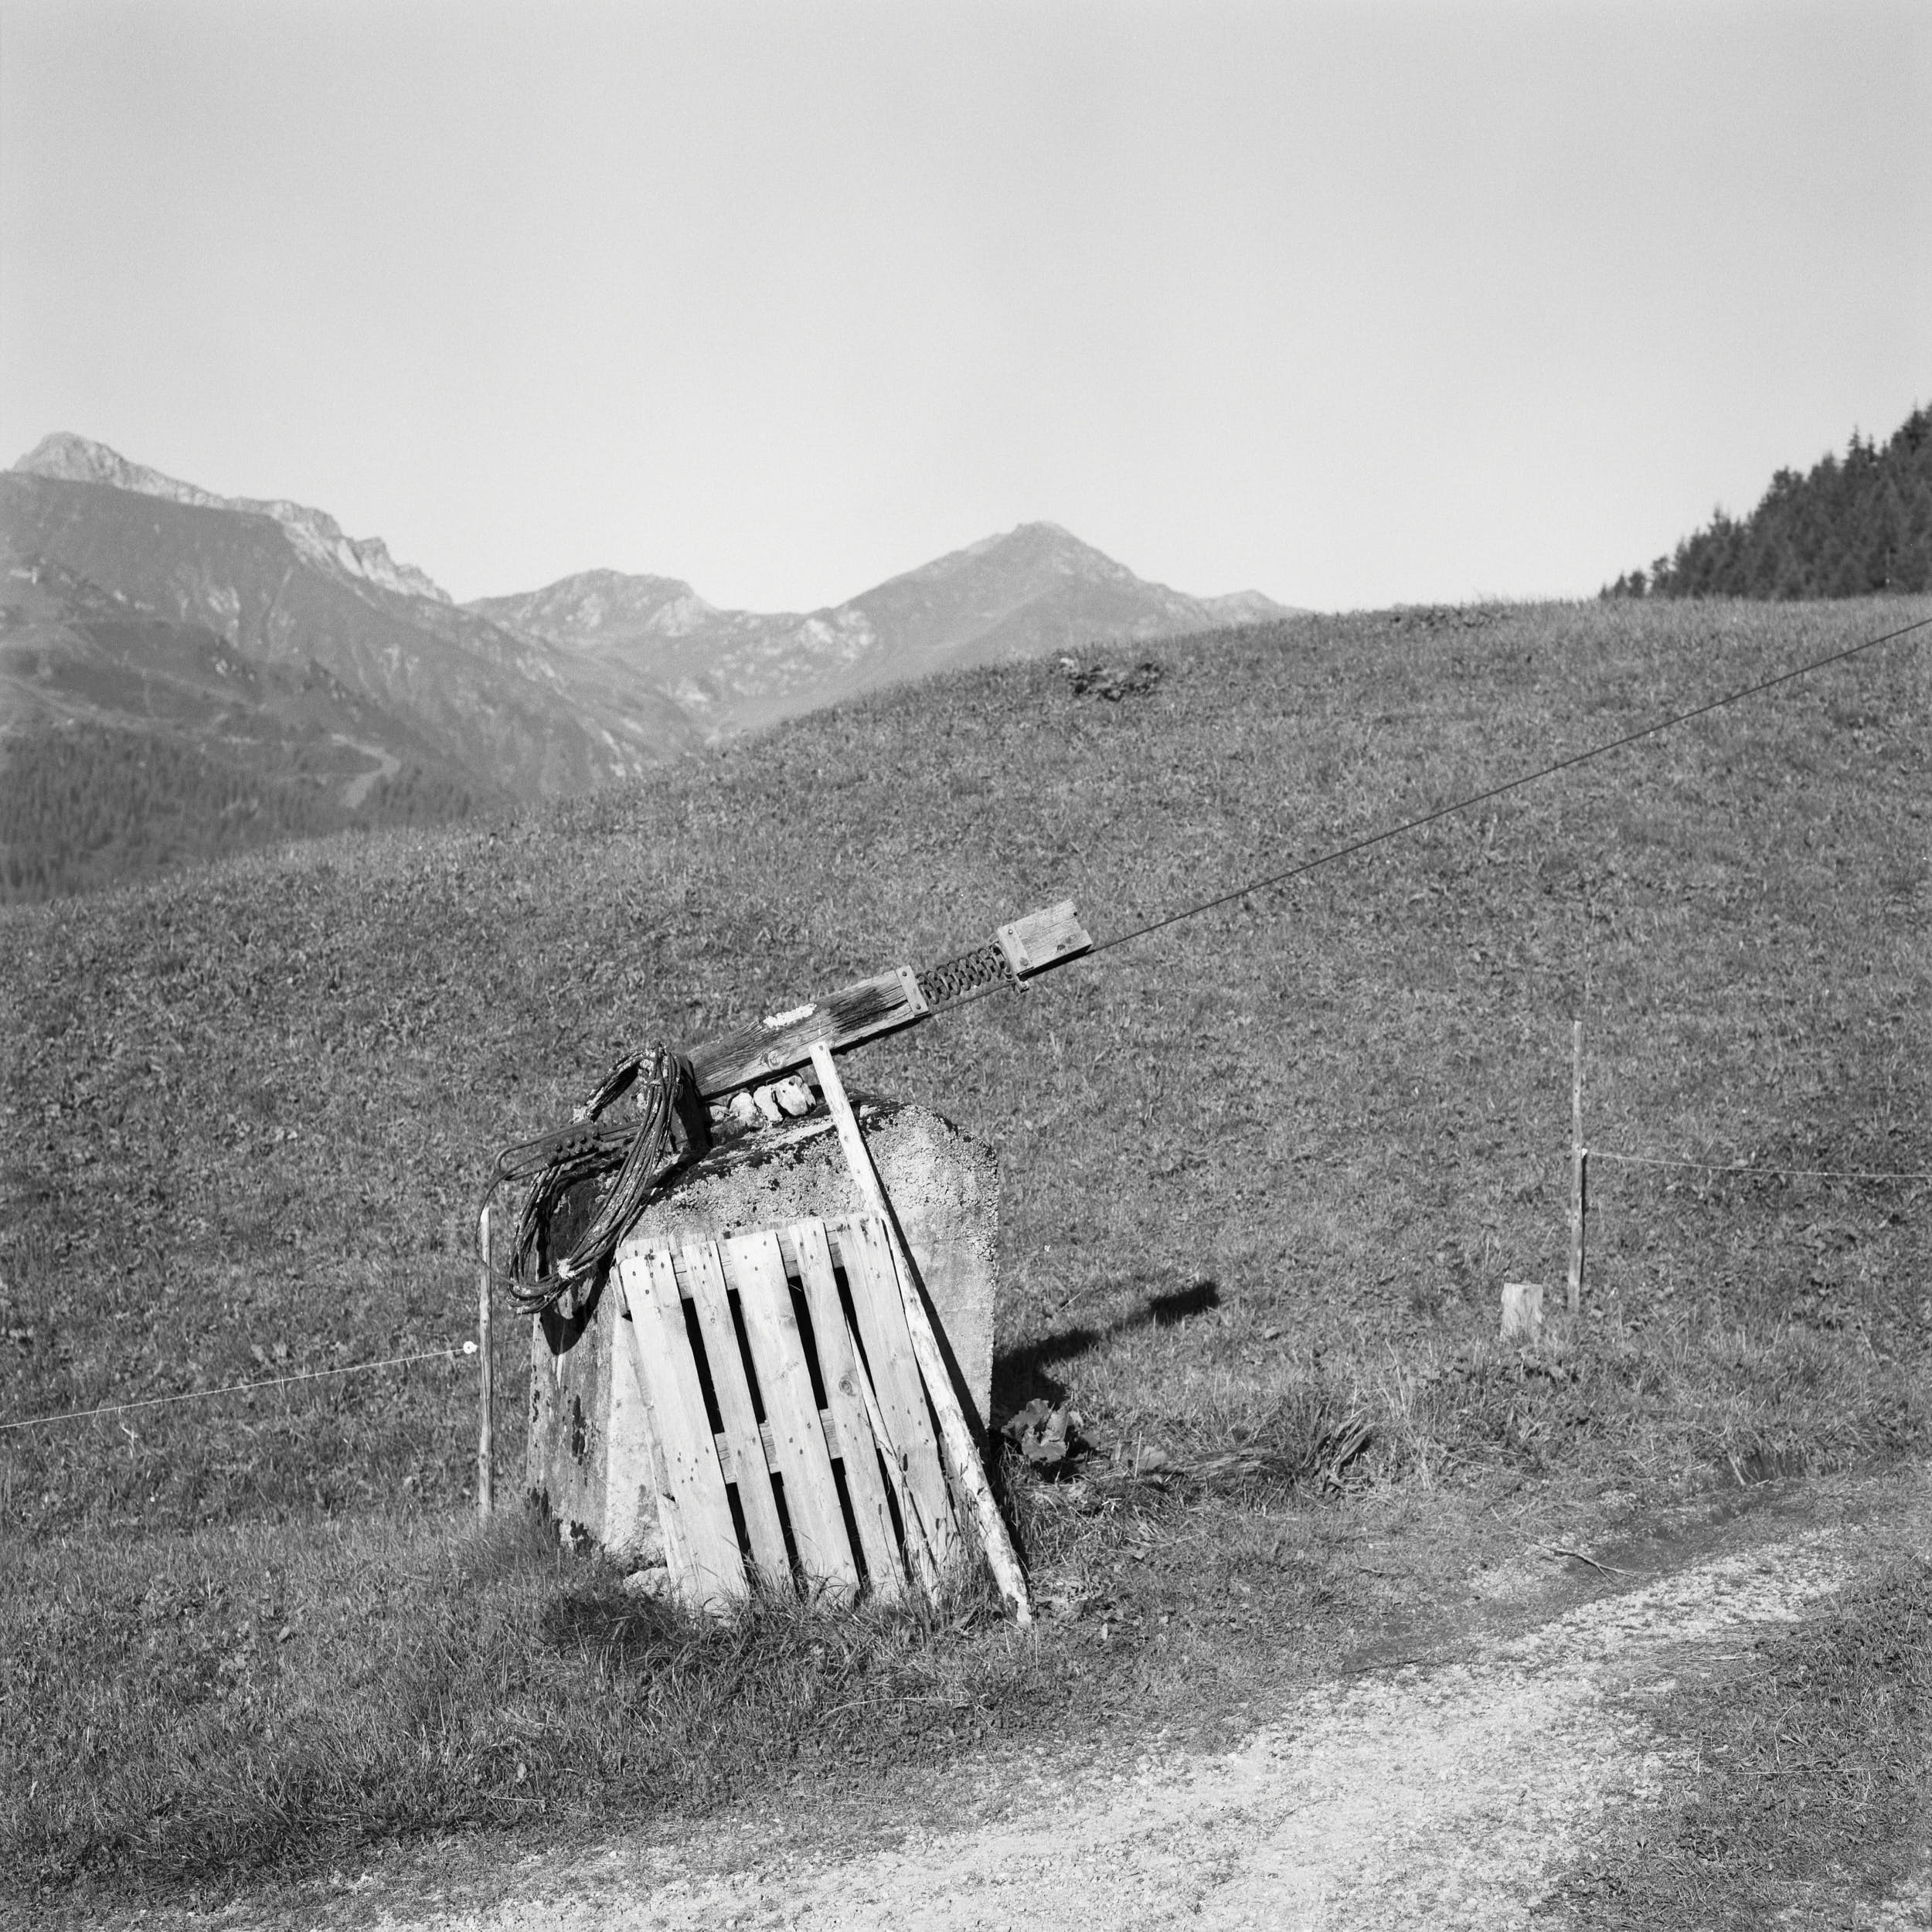 Improvised cableway for transporting goods on a mountain side.